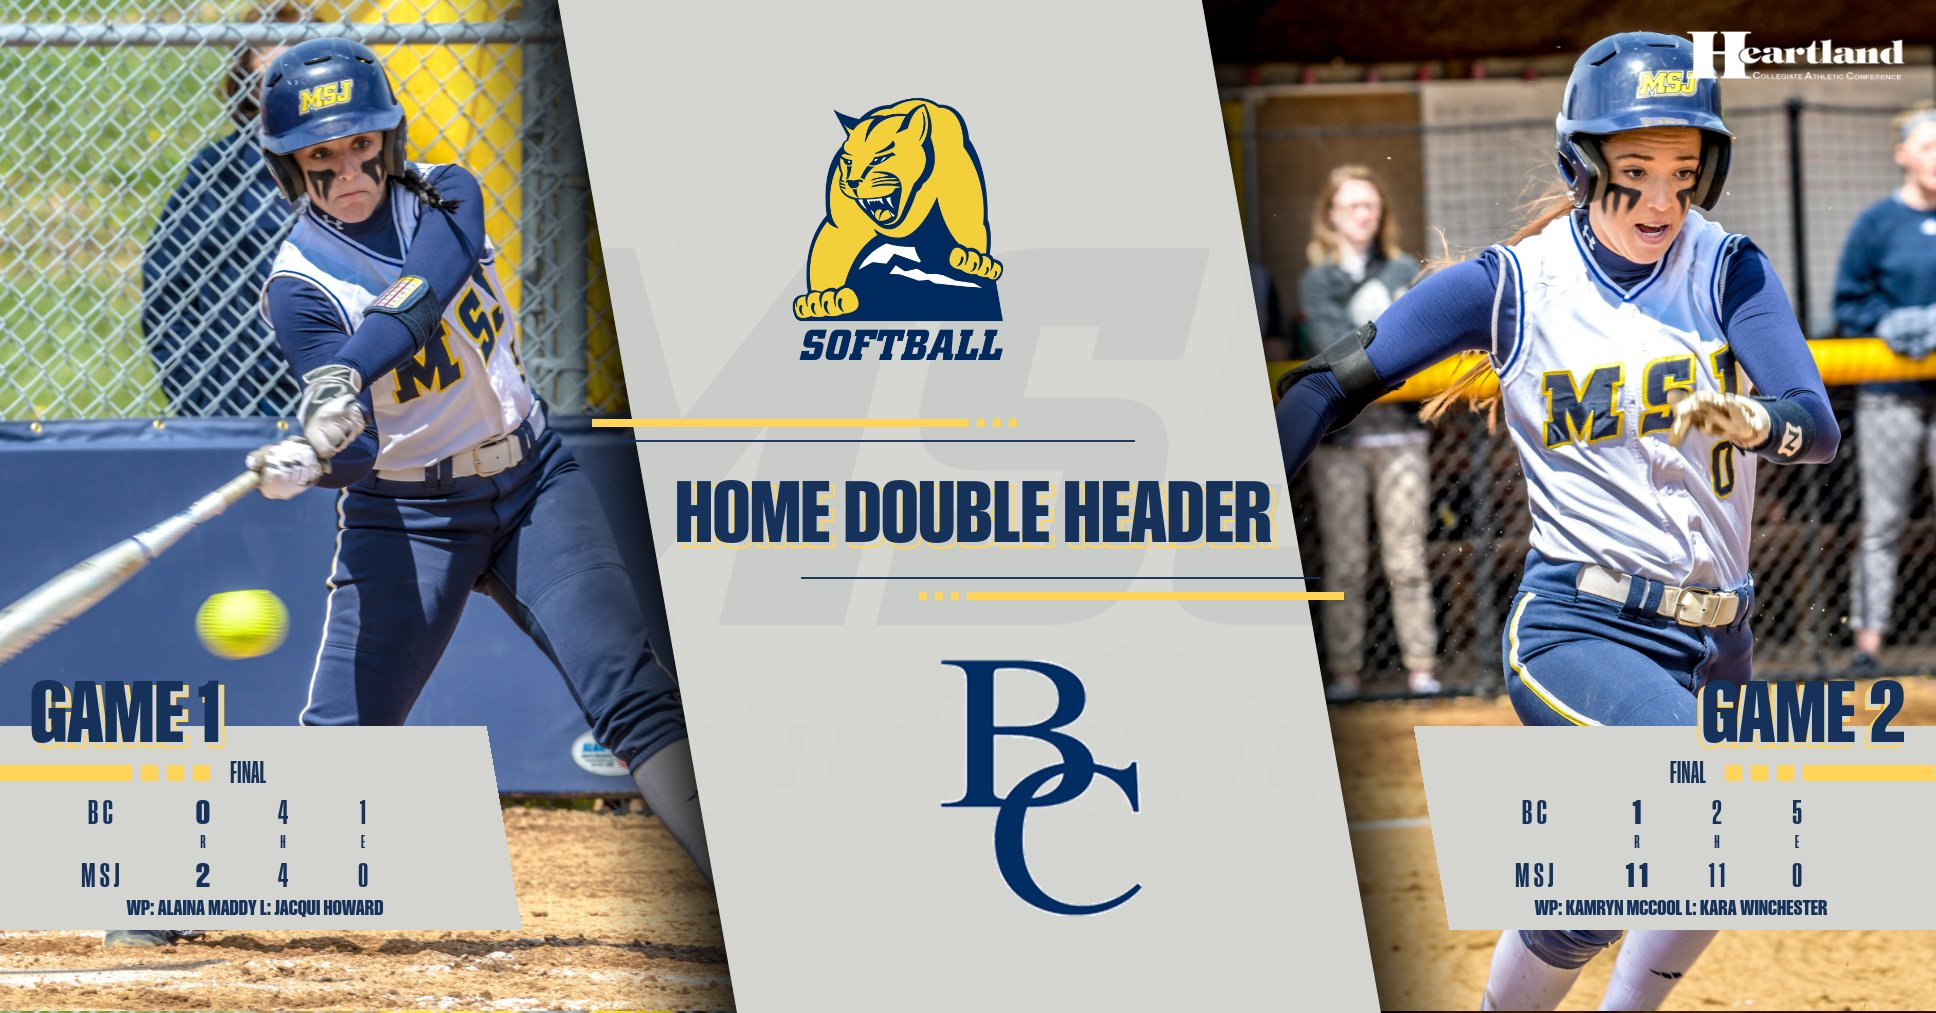 Lions Sweep Berea in First Home Double Header of the Season